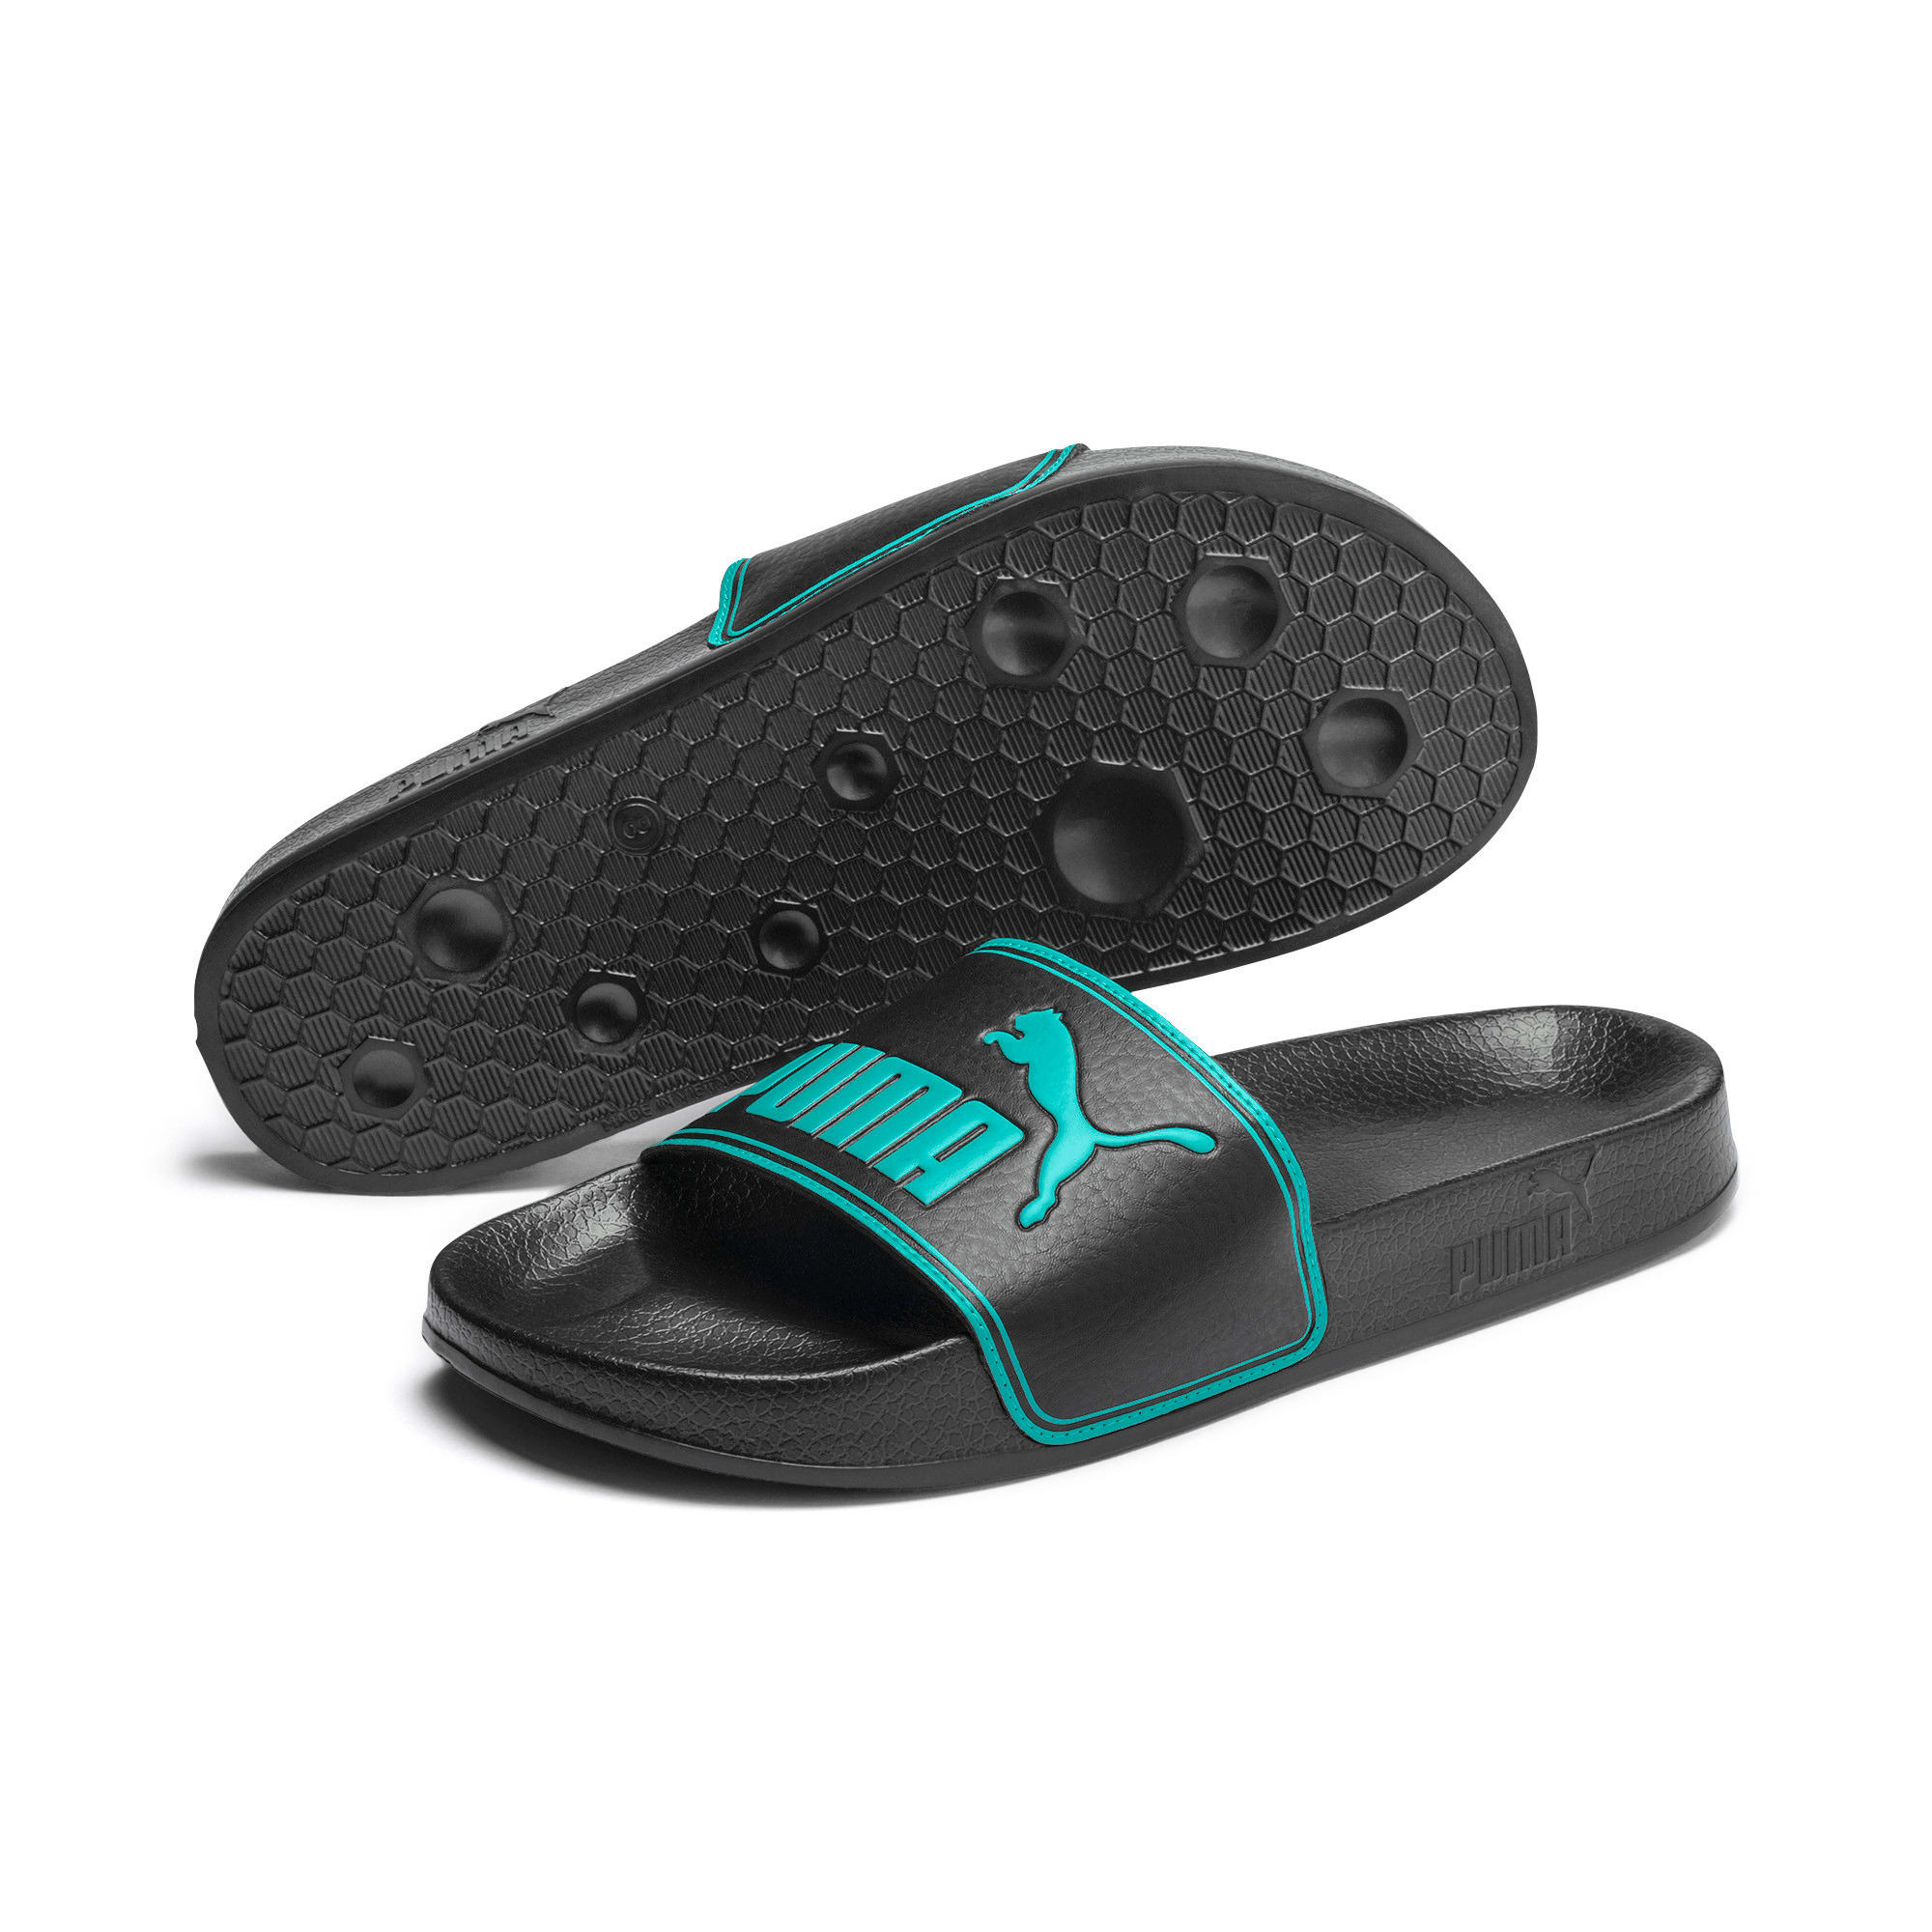 Thumbnail 2 of Leadcat Sandals, Puma Black-Blue Turquoise, medium